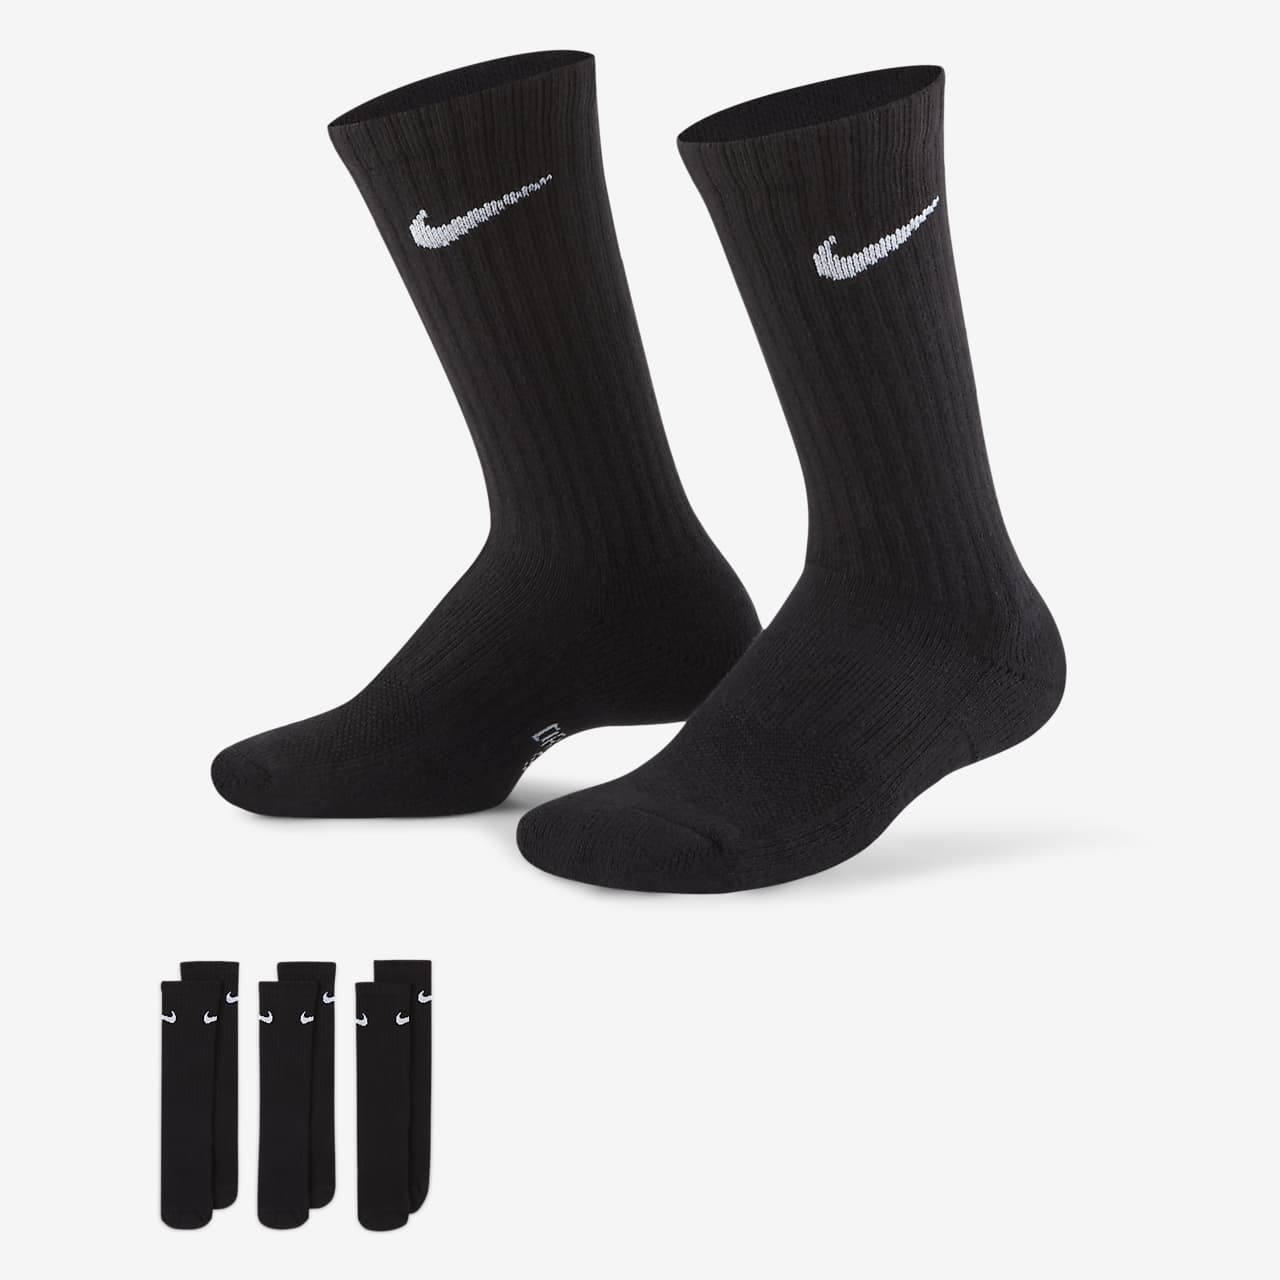 Nike Performance Cushioned Crew Kinder-Trainingssocken (3 Paar)